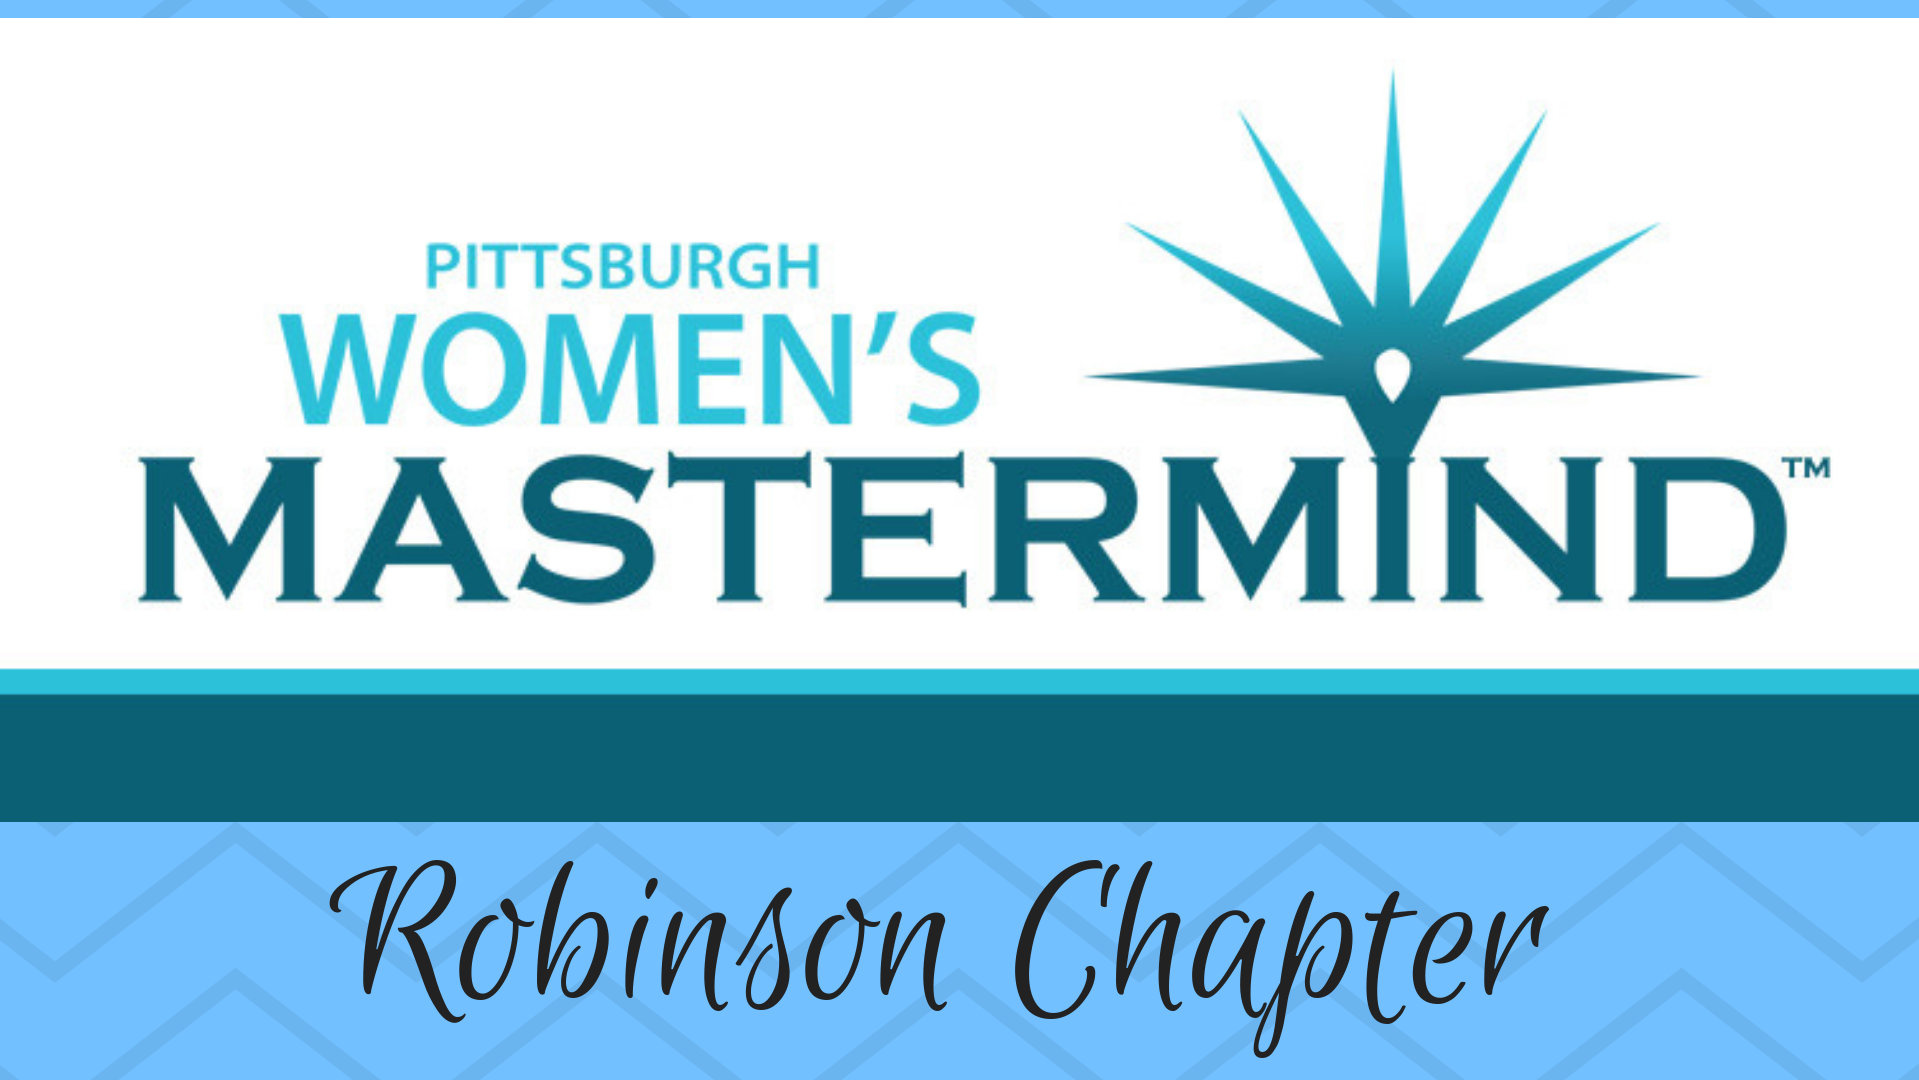 Pittsburgh Women's Mastermind for Entrepreneurs: Robinson